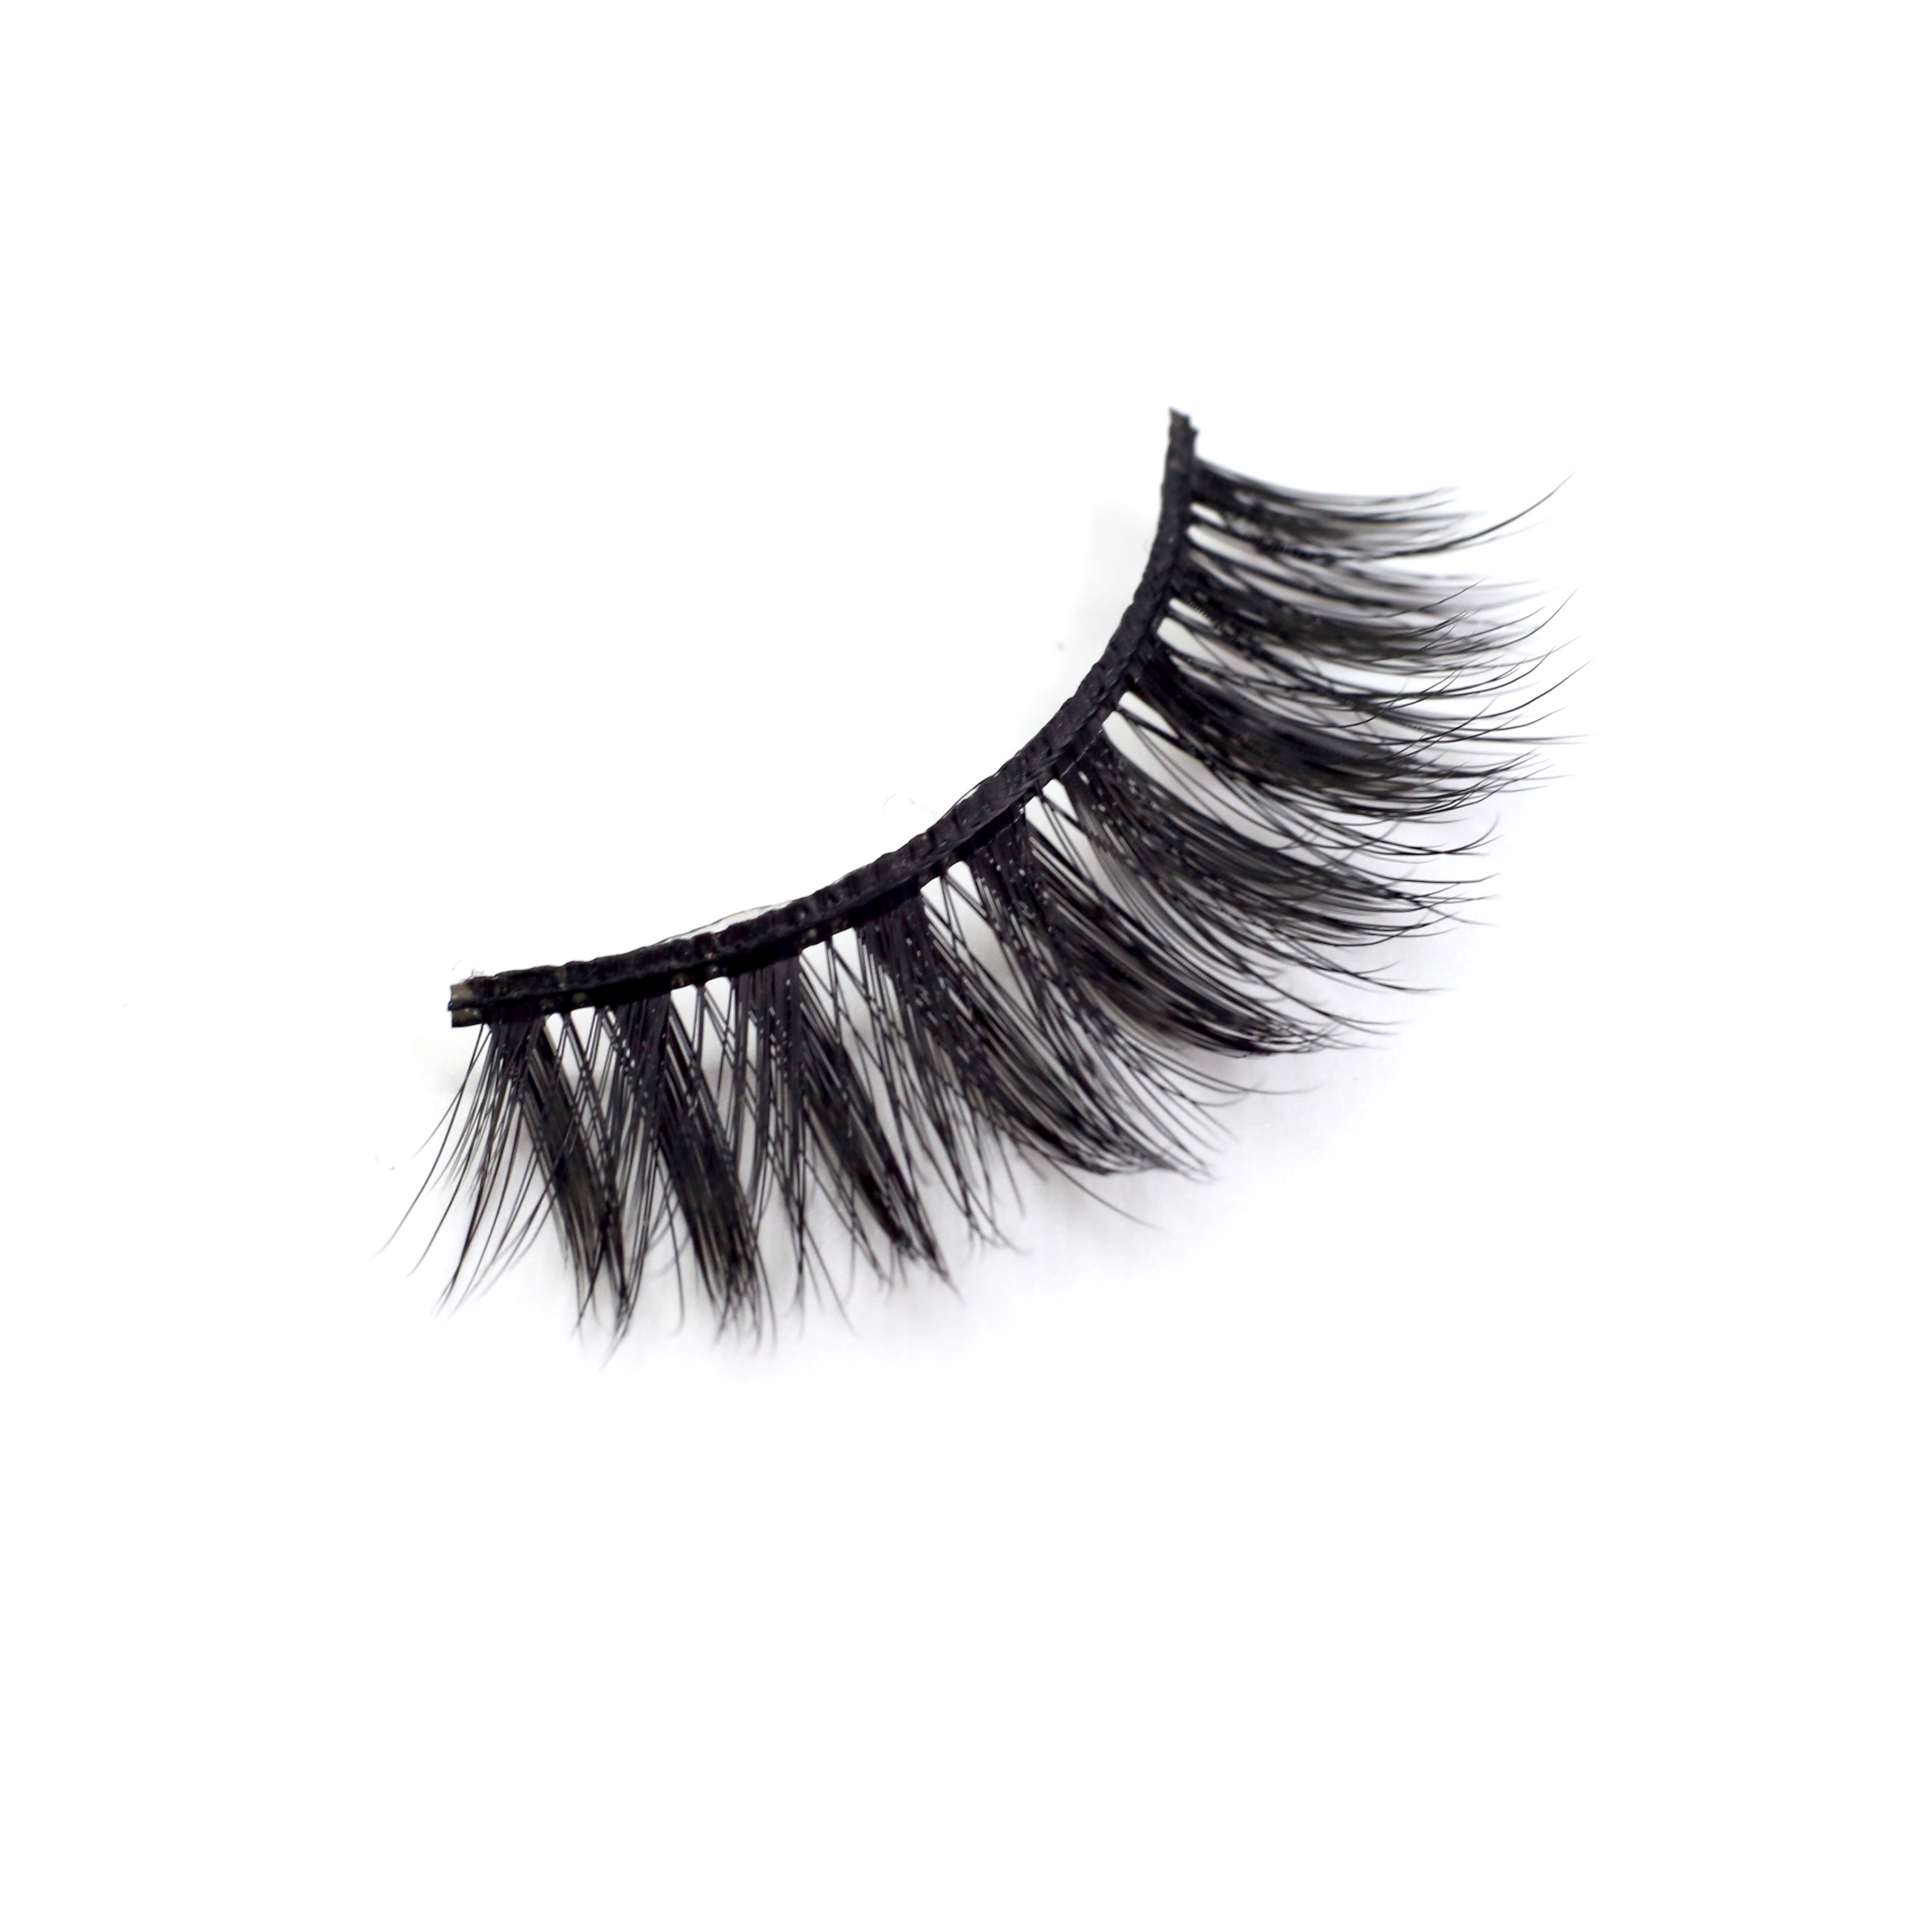 Faux eyelashes Factory lashes Full Strip Lashes False Eyelashes Type 1 Tray 5 Pairs